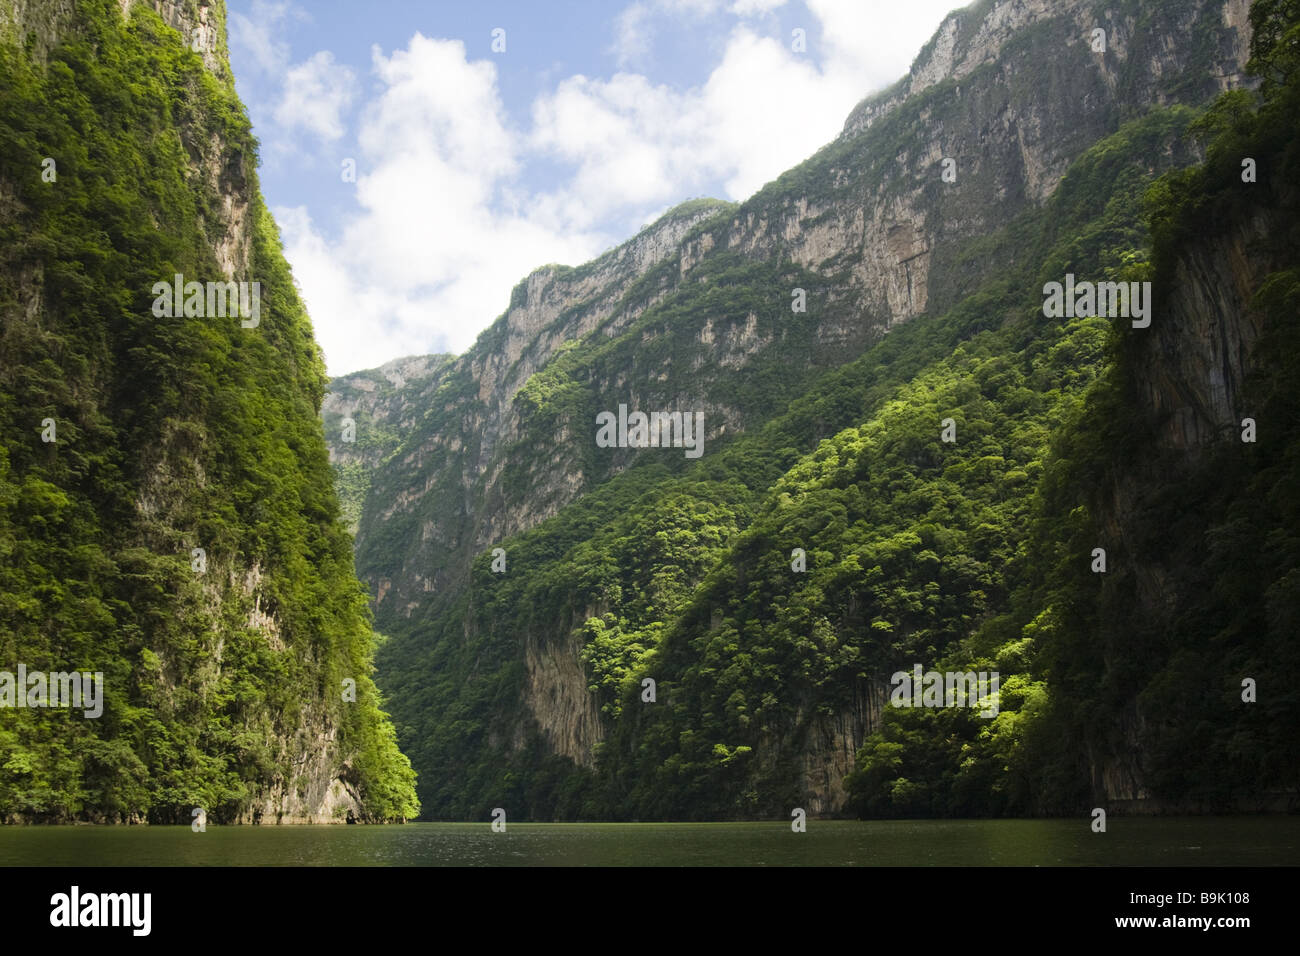 Lush limestone cliffs rise above the Grijalva River as it winds through Sumidero Canyon in Chiapas, Mexico. - Stock Image